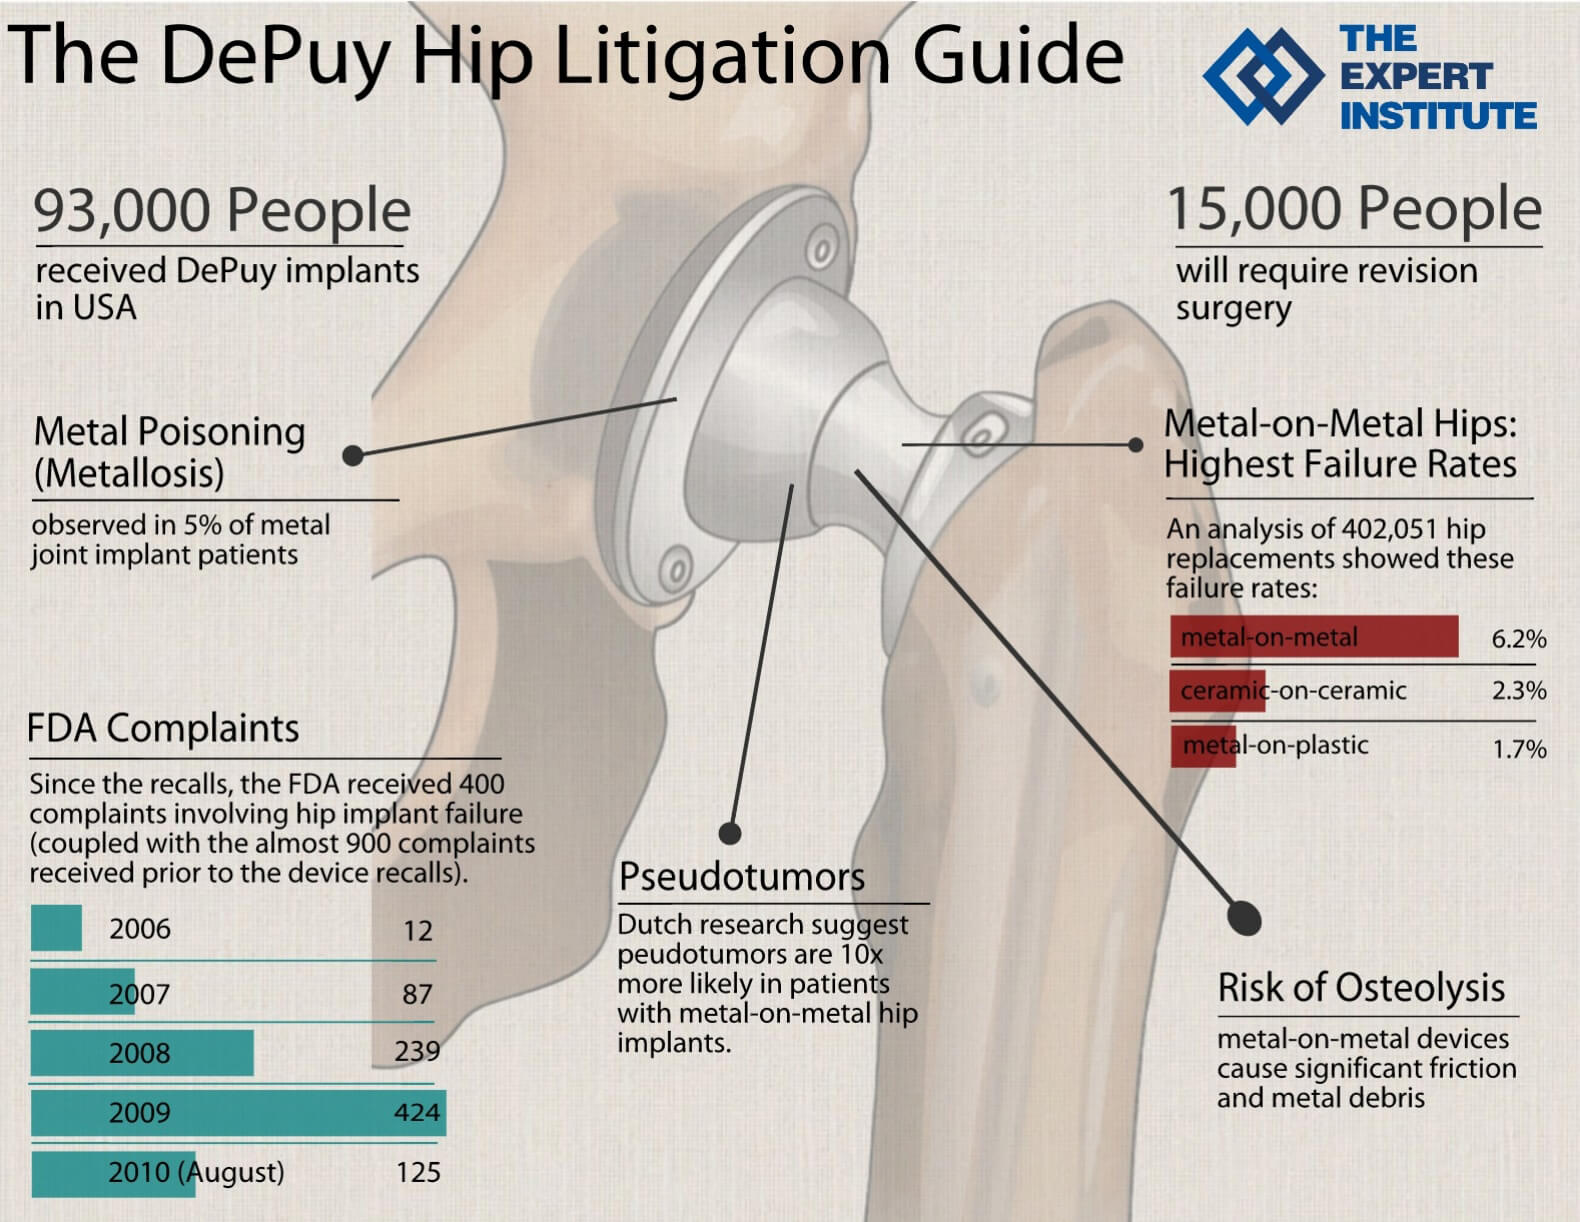 DePuy Hip Expert Witness: A Litigation Guide